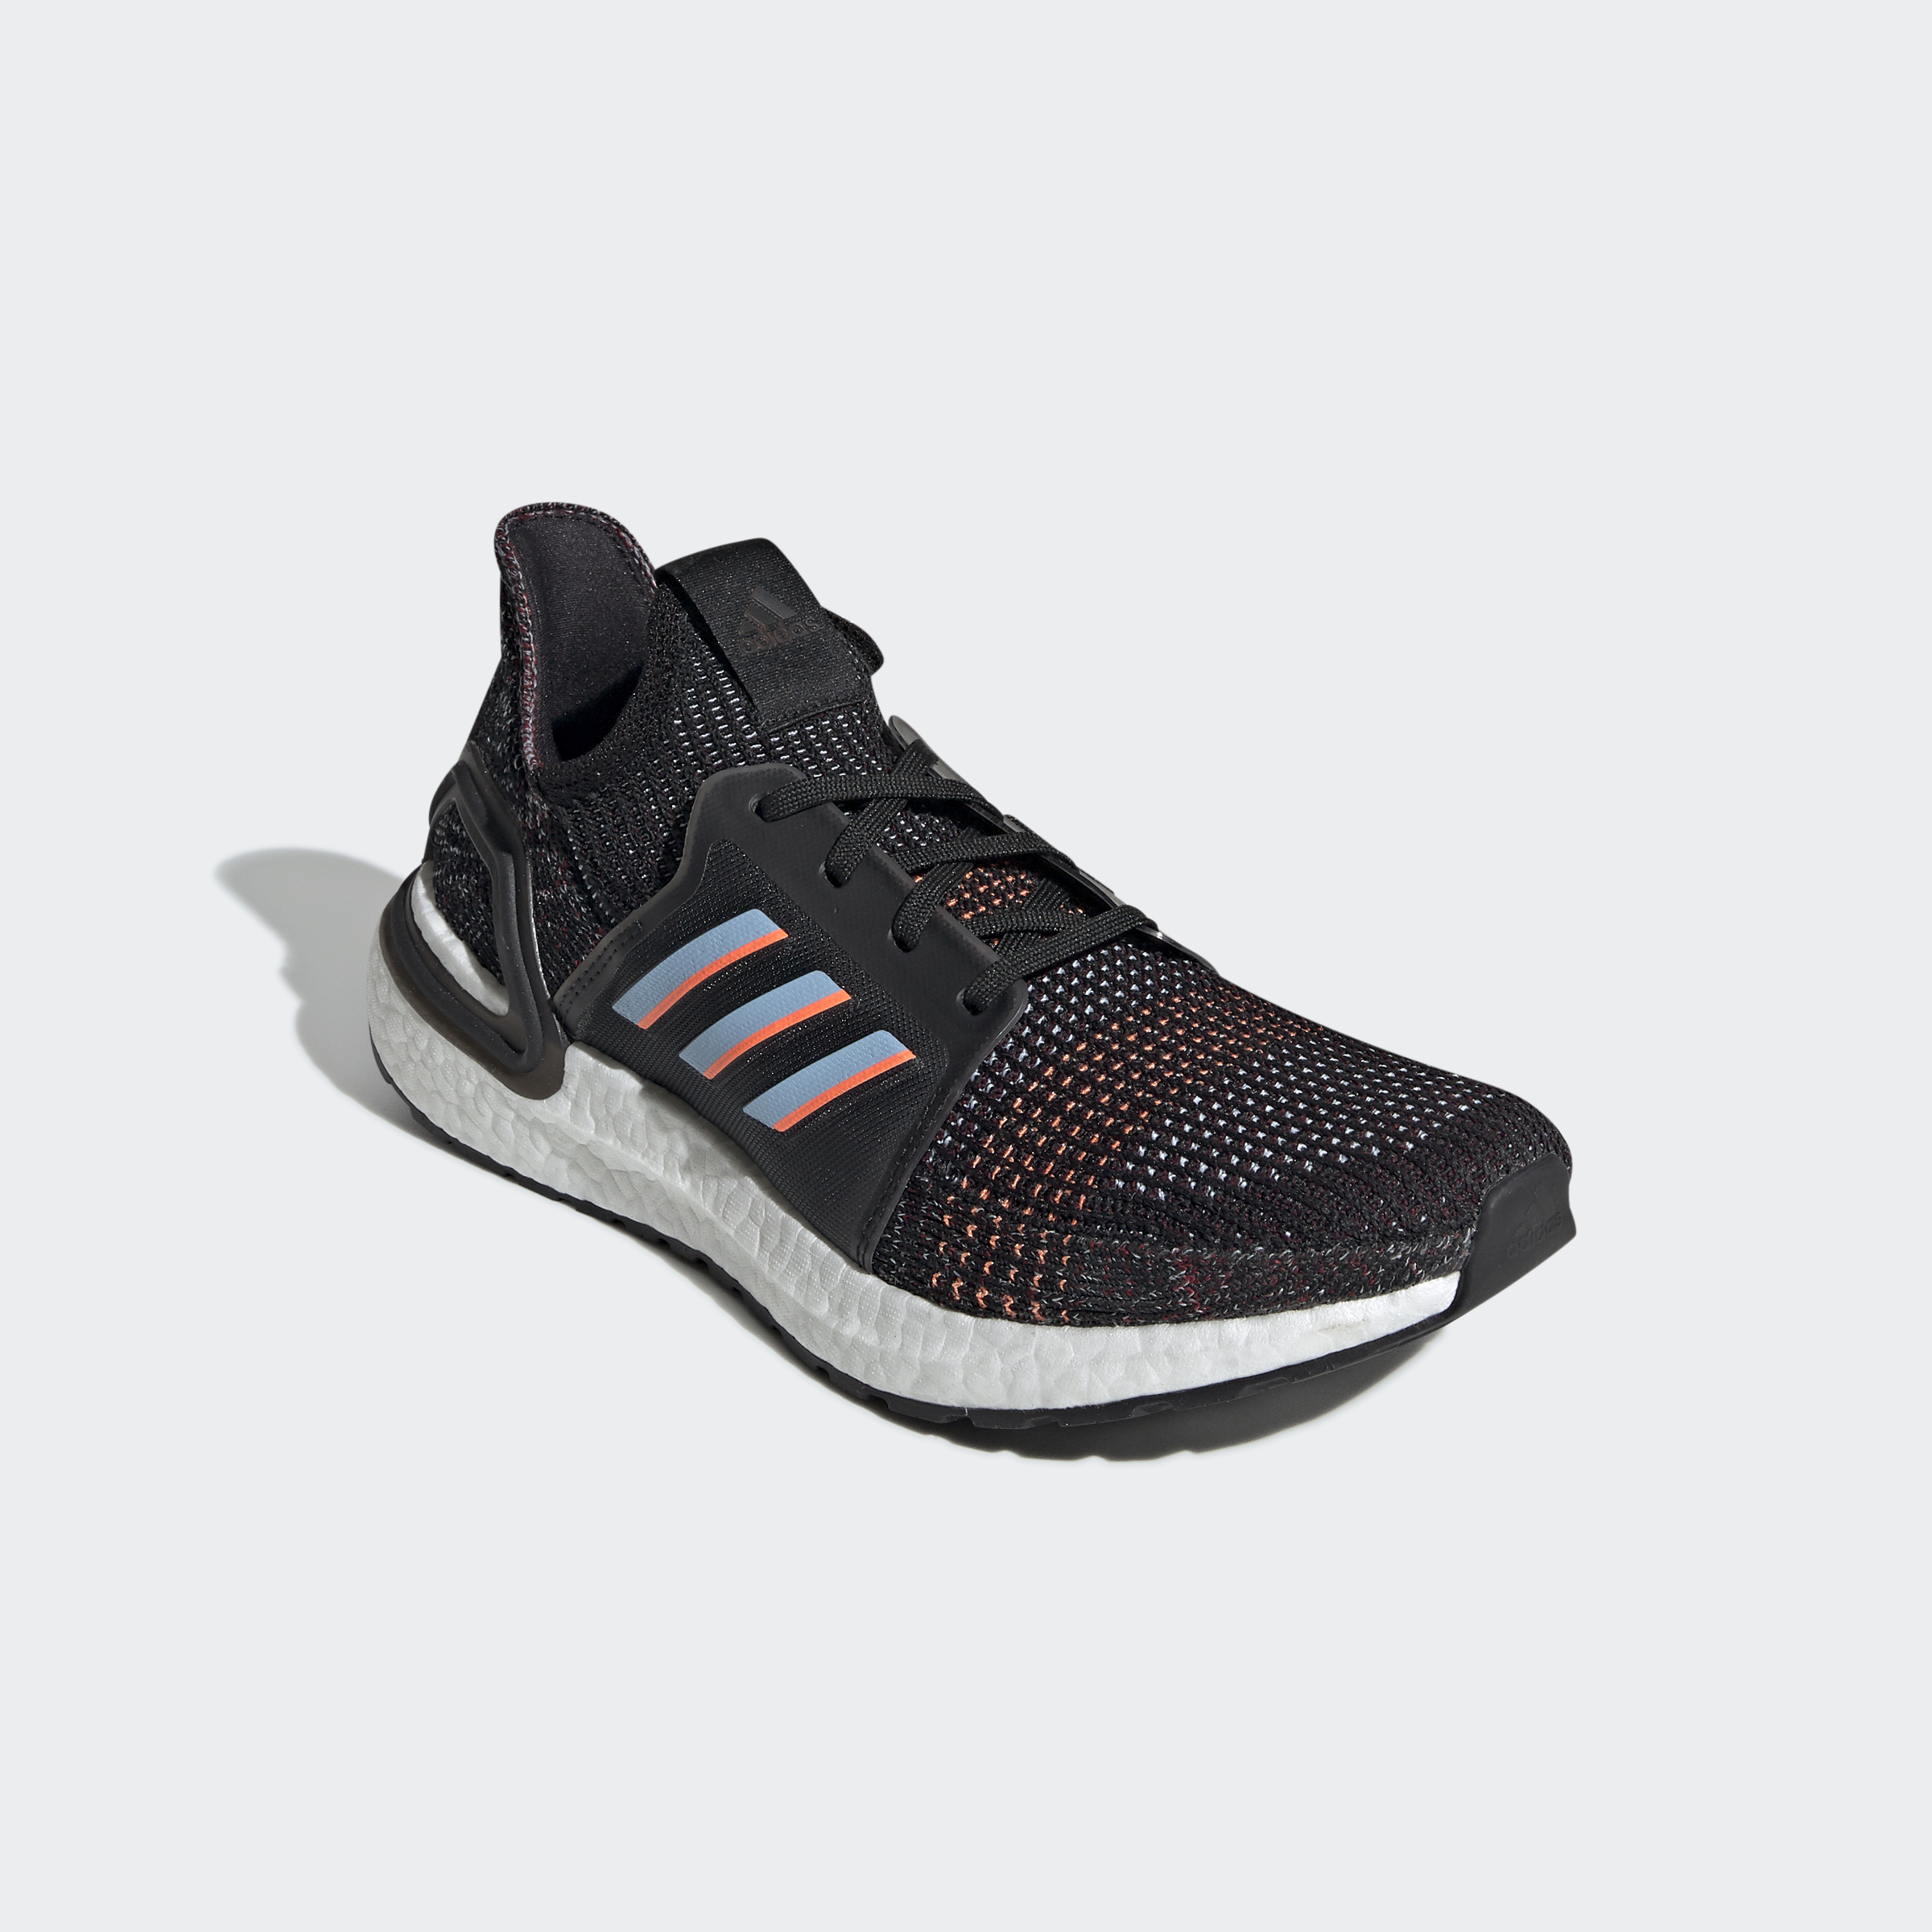 adidas-Ultraboost-19-Shoes-Athletic-amp-Sneakers thumbnail 135